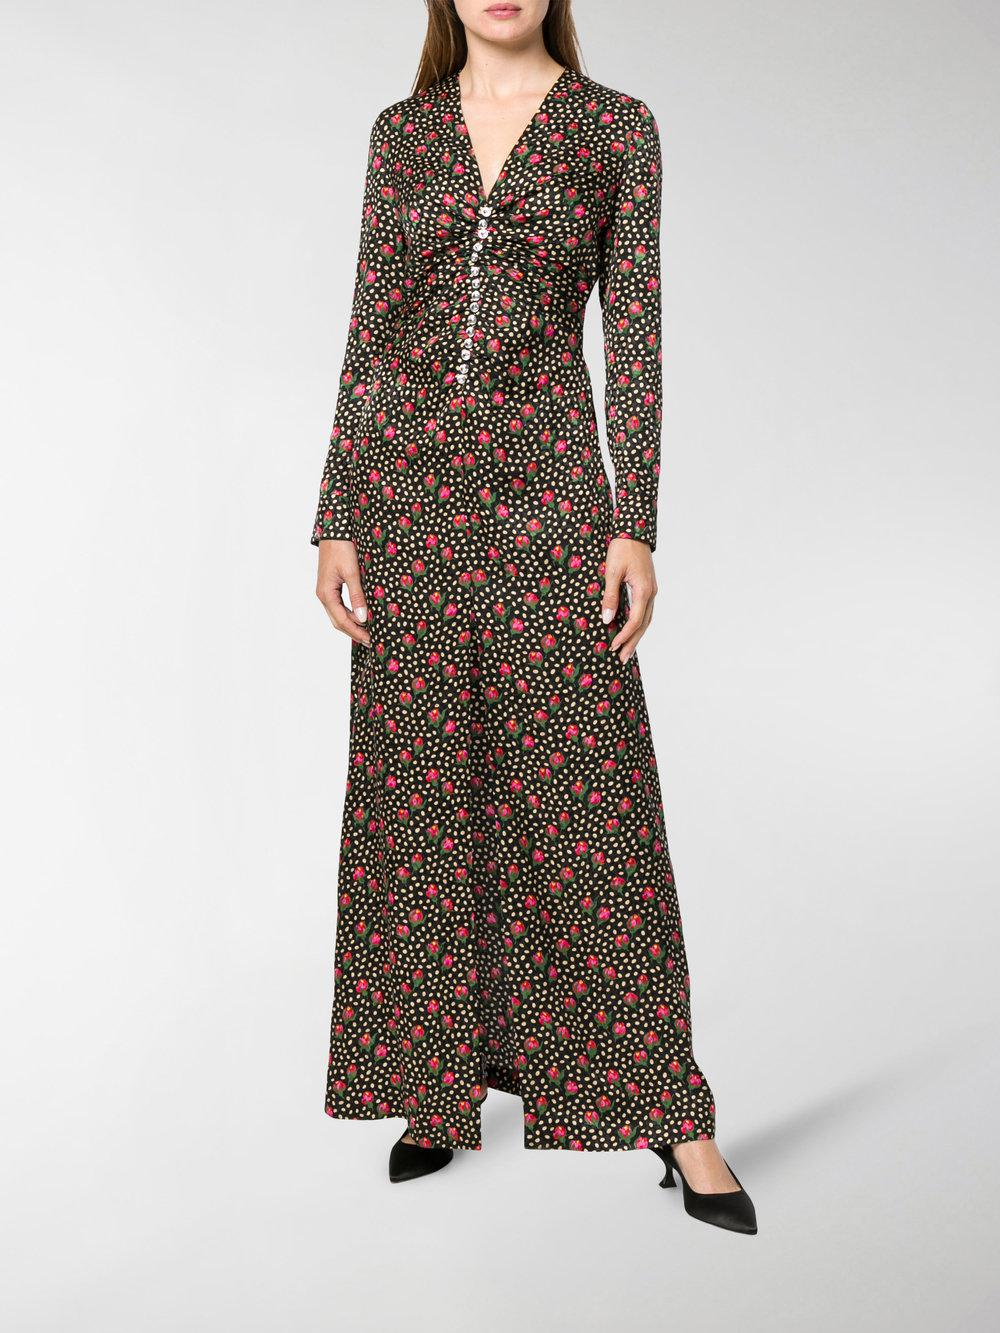 61ddf9676 Lyst - Miu Miu Button-embellished Printed Maxi Dress in Black